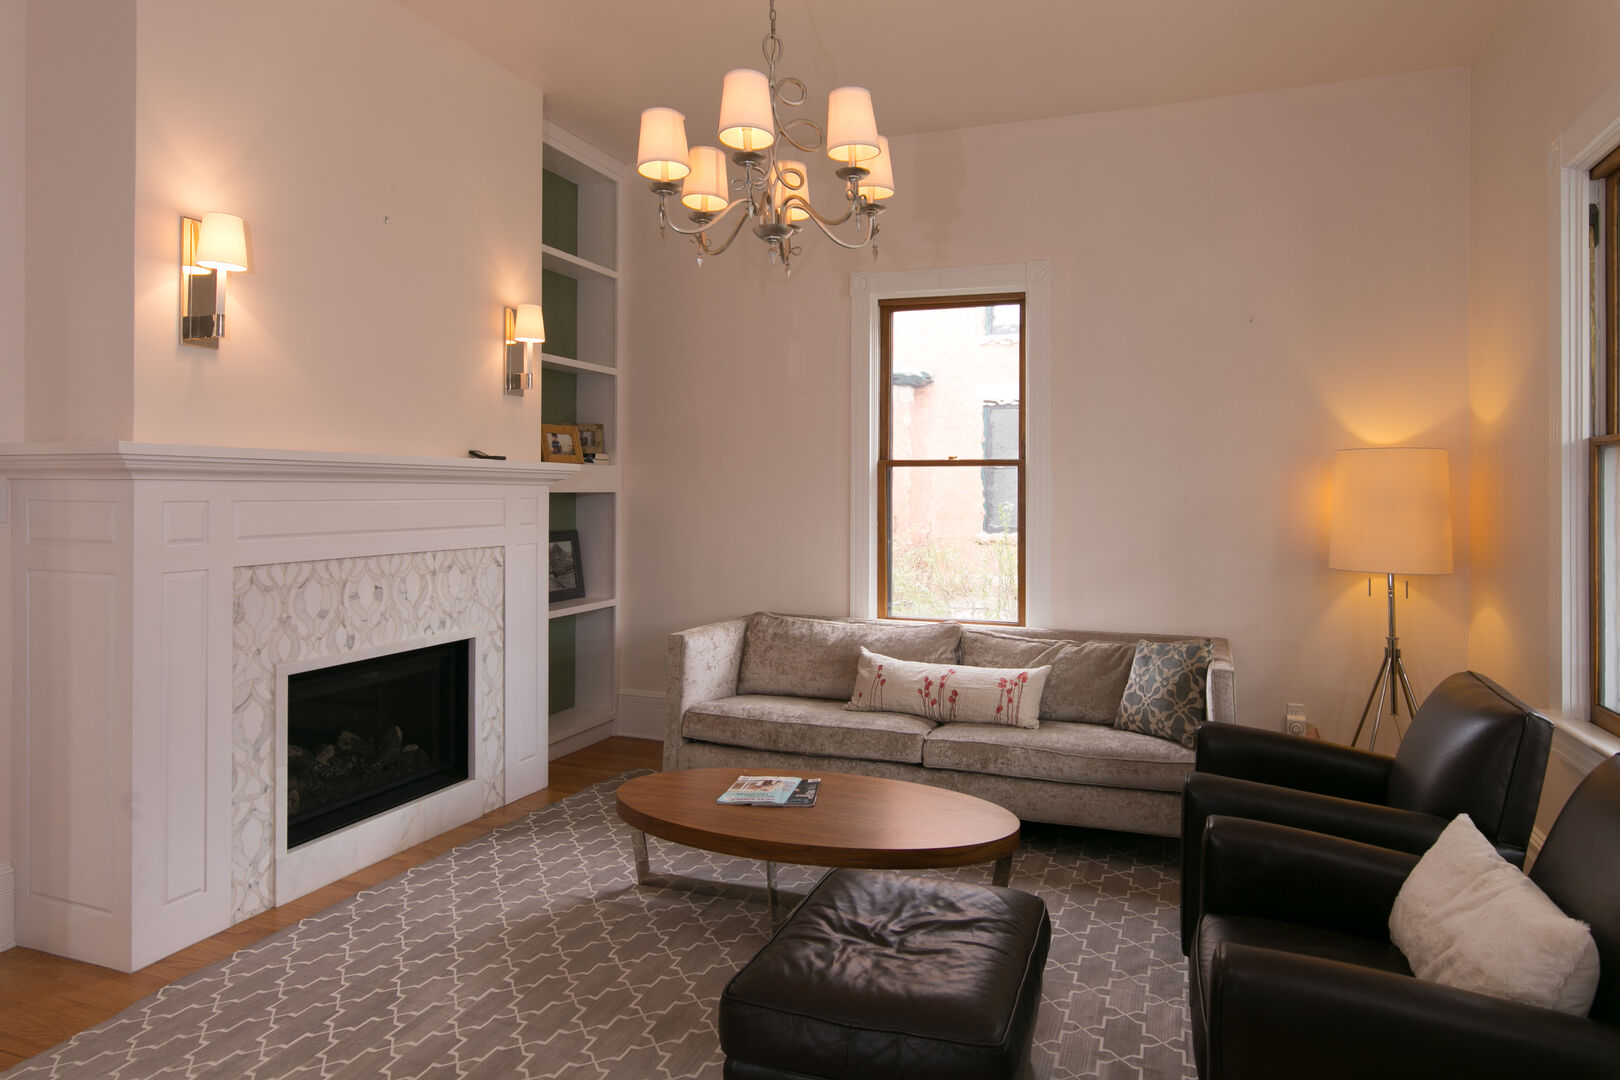 Formal living room as you come in the front door.